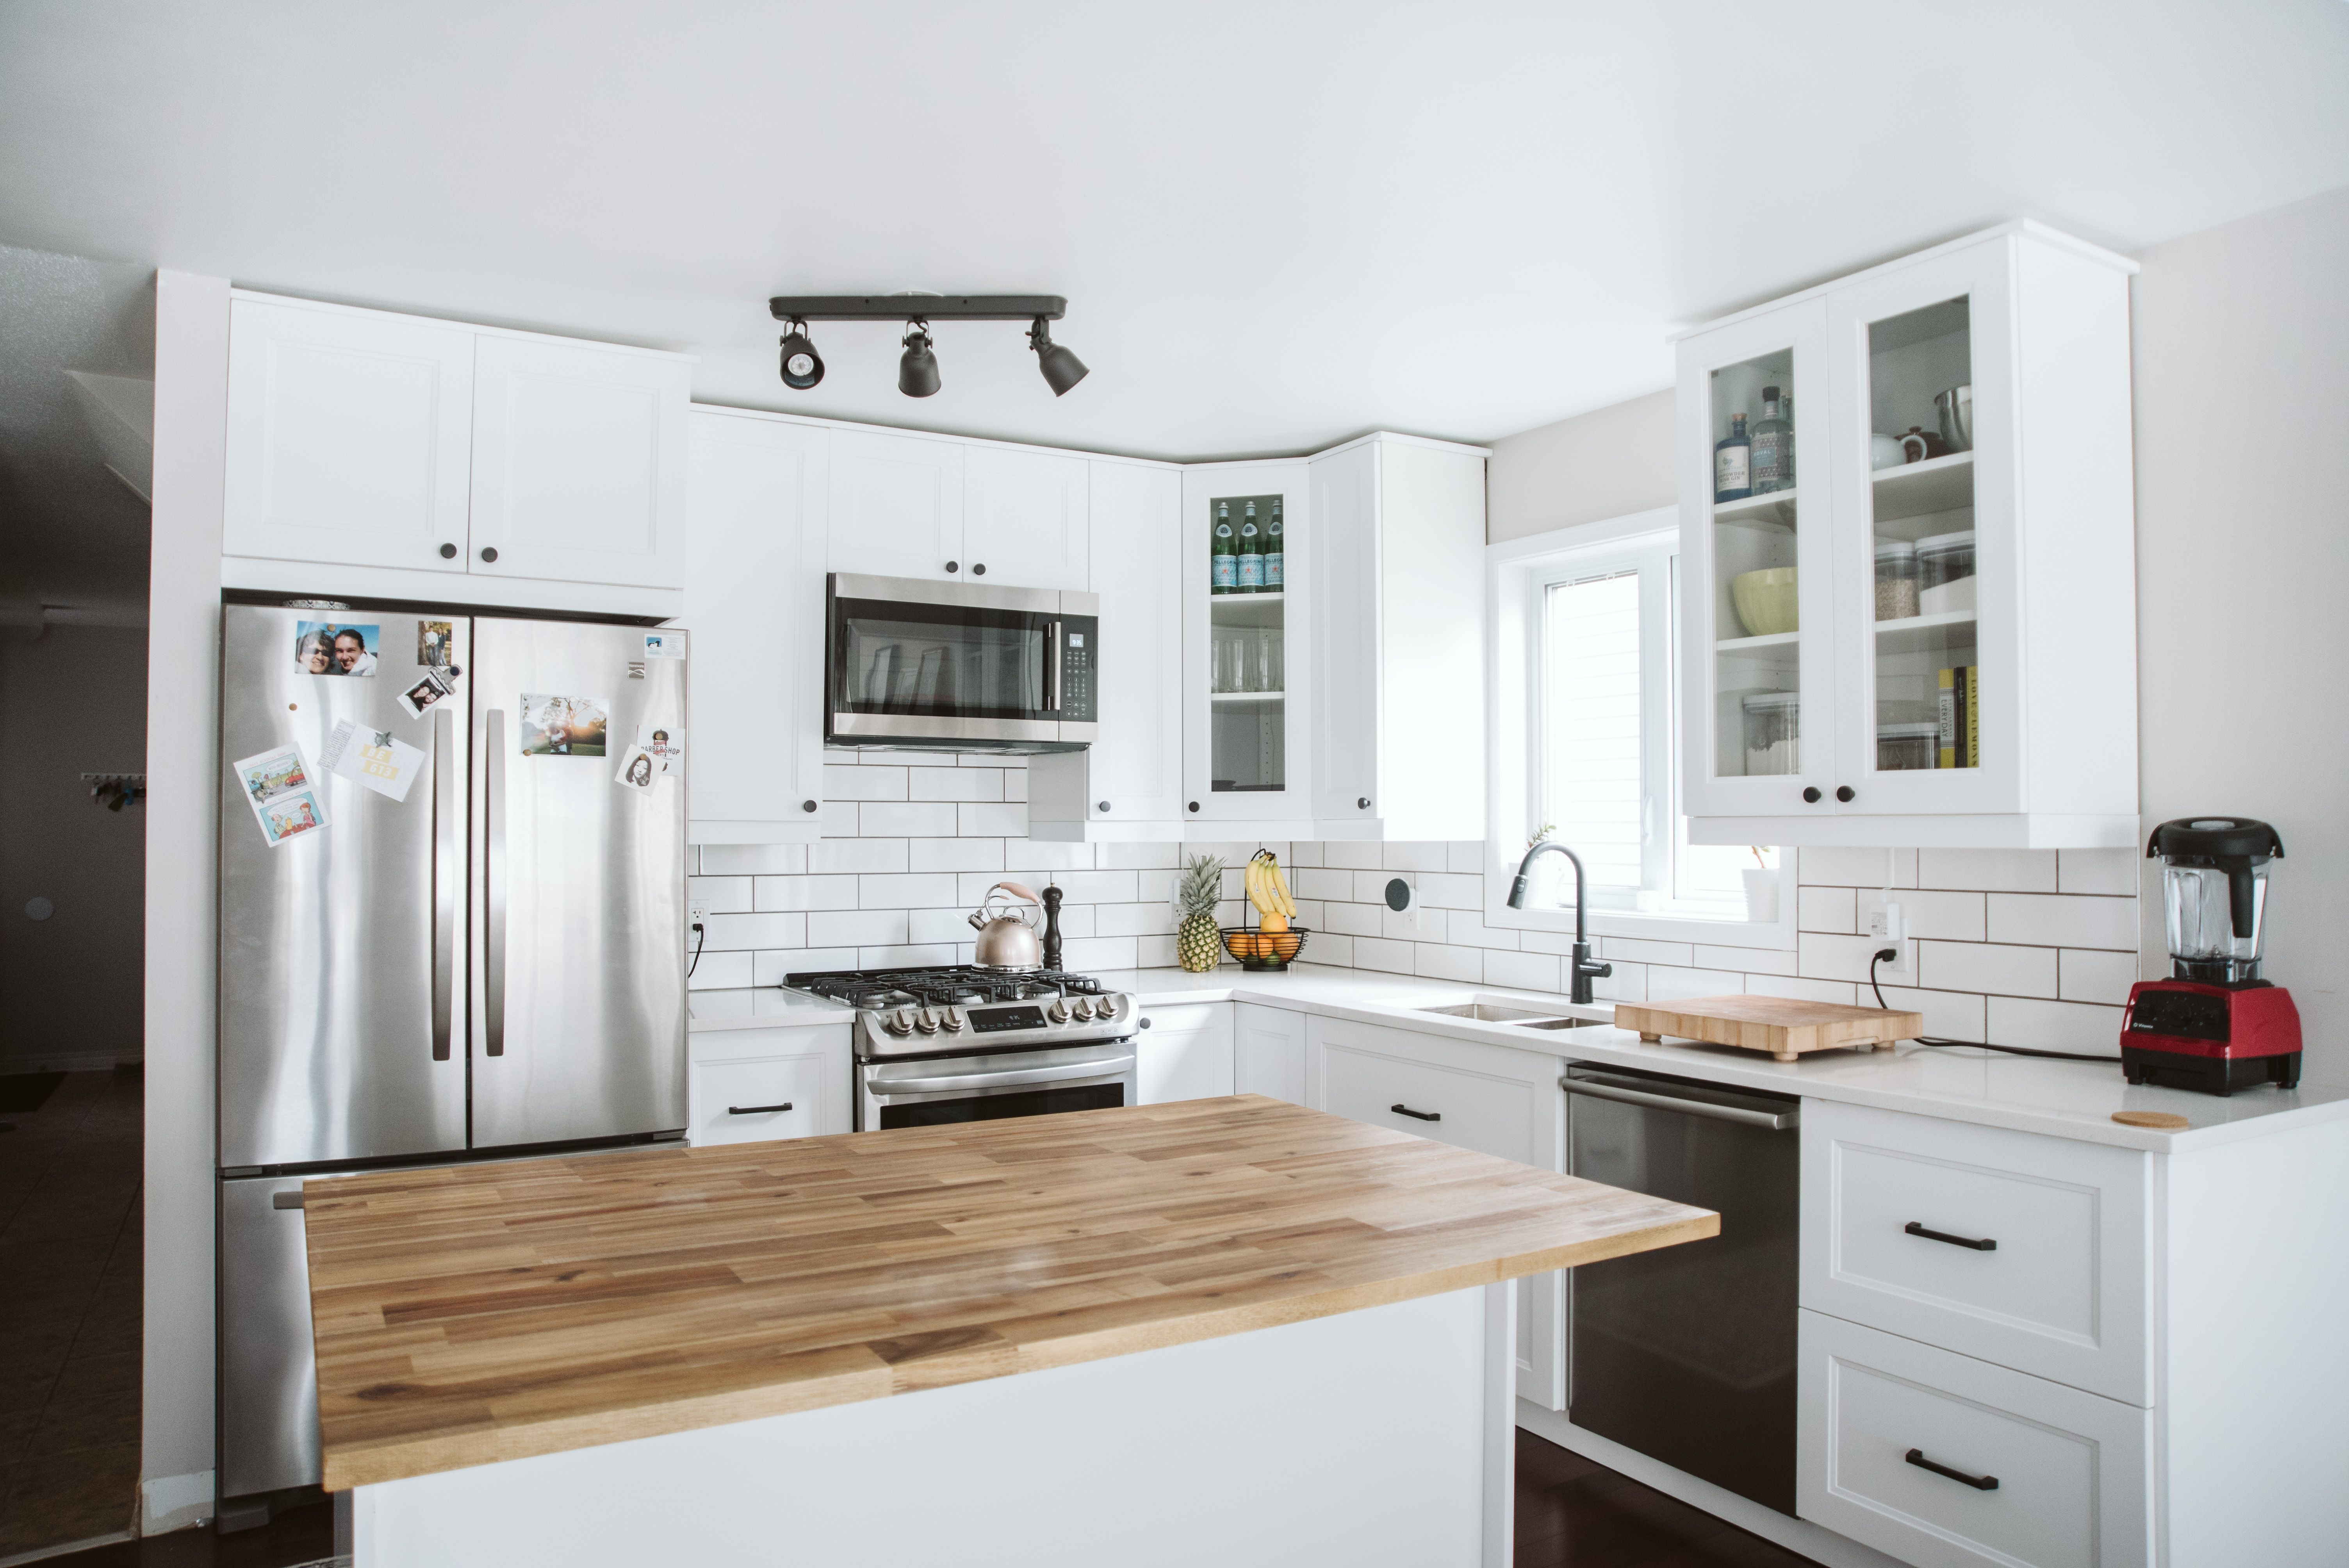 How Much Does an IKEA Kitchen Cost? Cost of kitchen